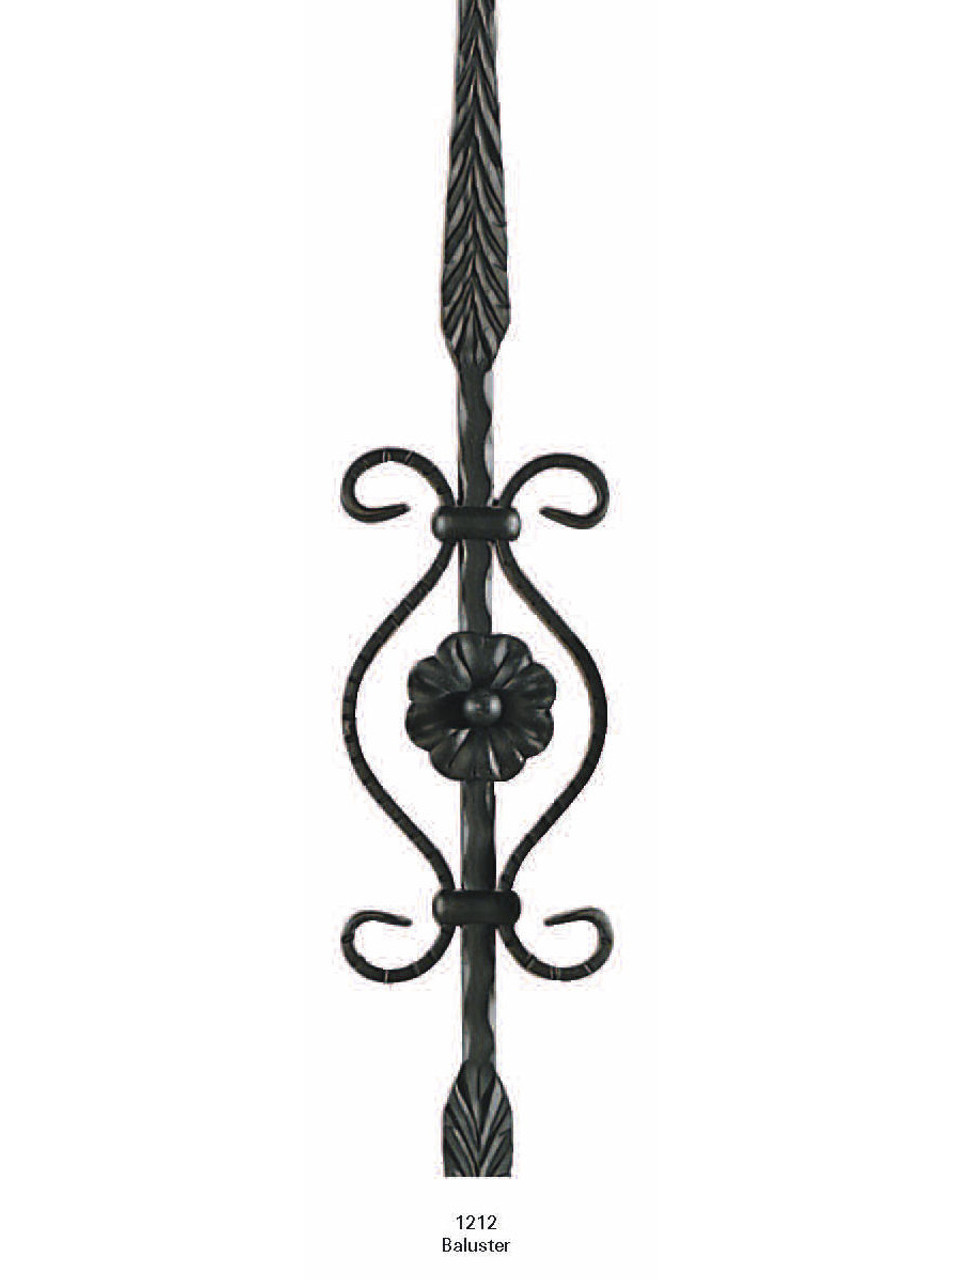 3212 Hollow Feathered with Scroll Iron Baluster